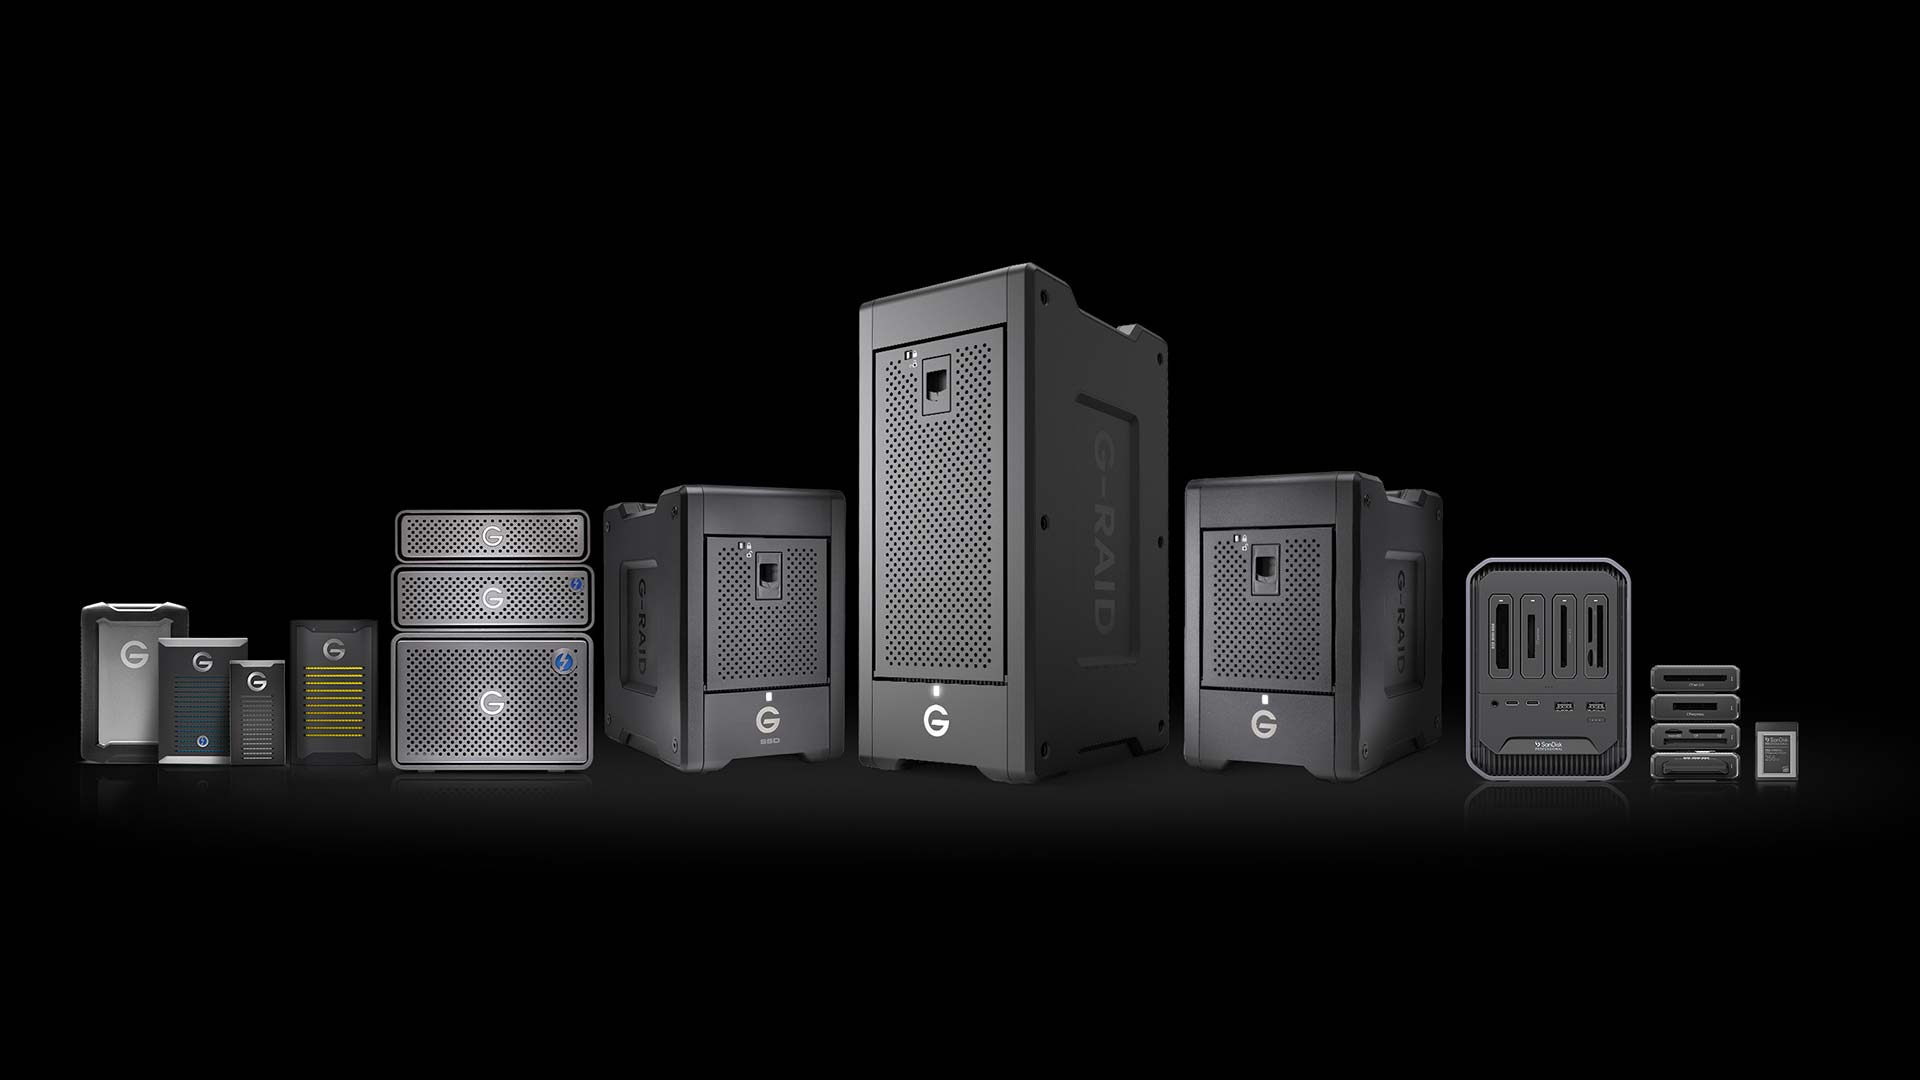 G-Technology is no more, but it has been reborn as SanDisk Professional. Image: Western Digital.